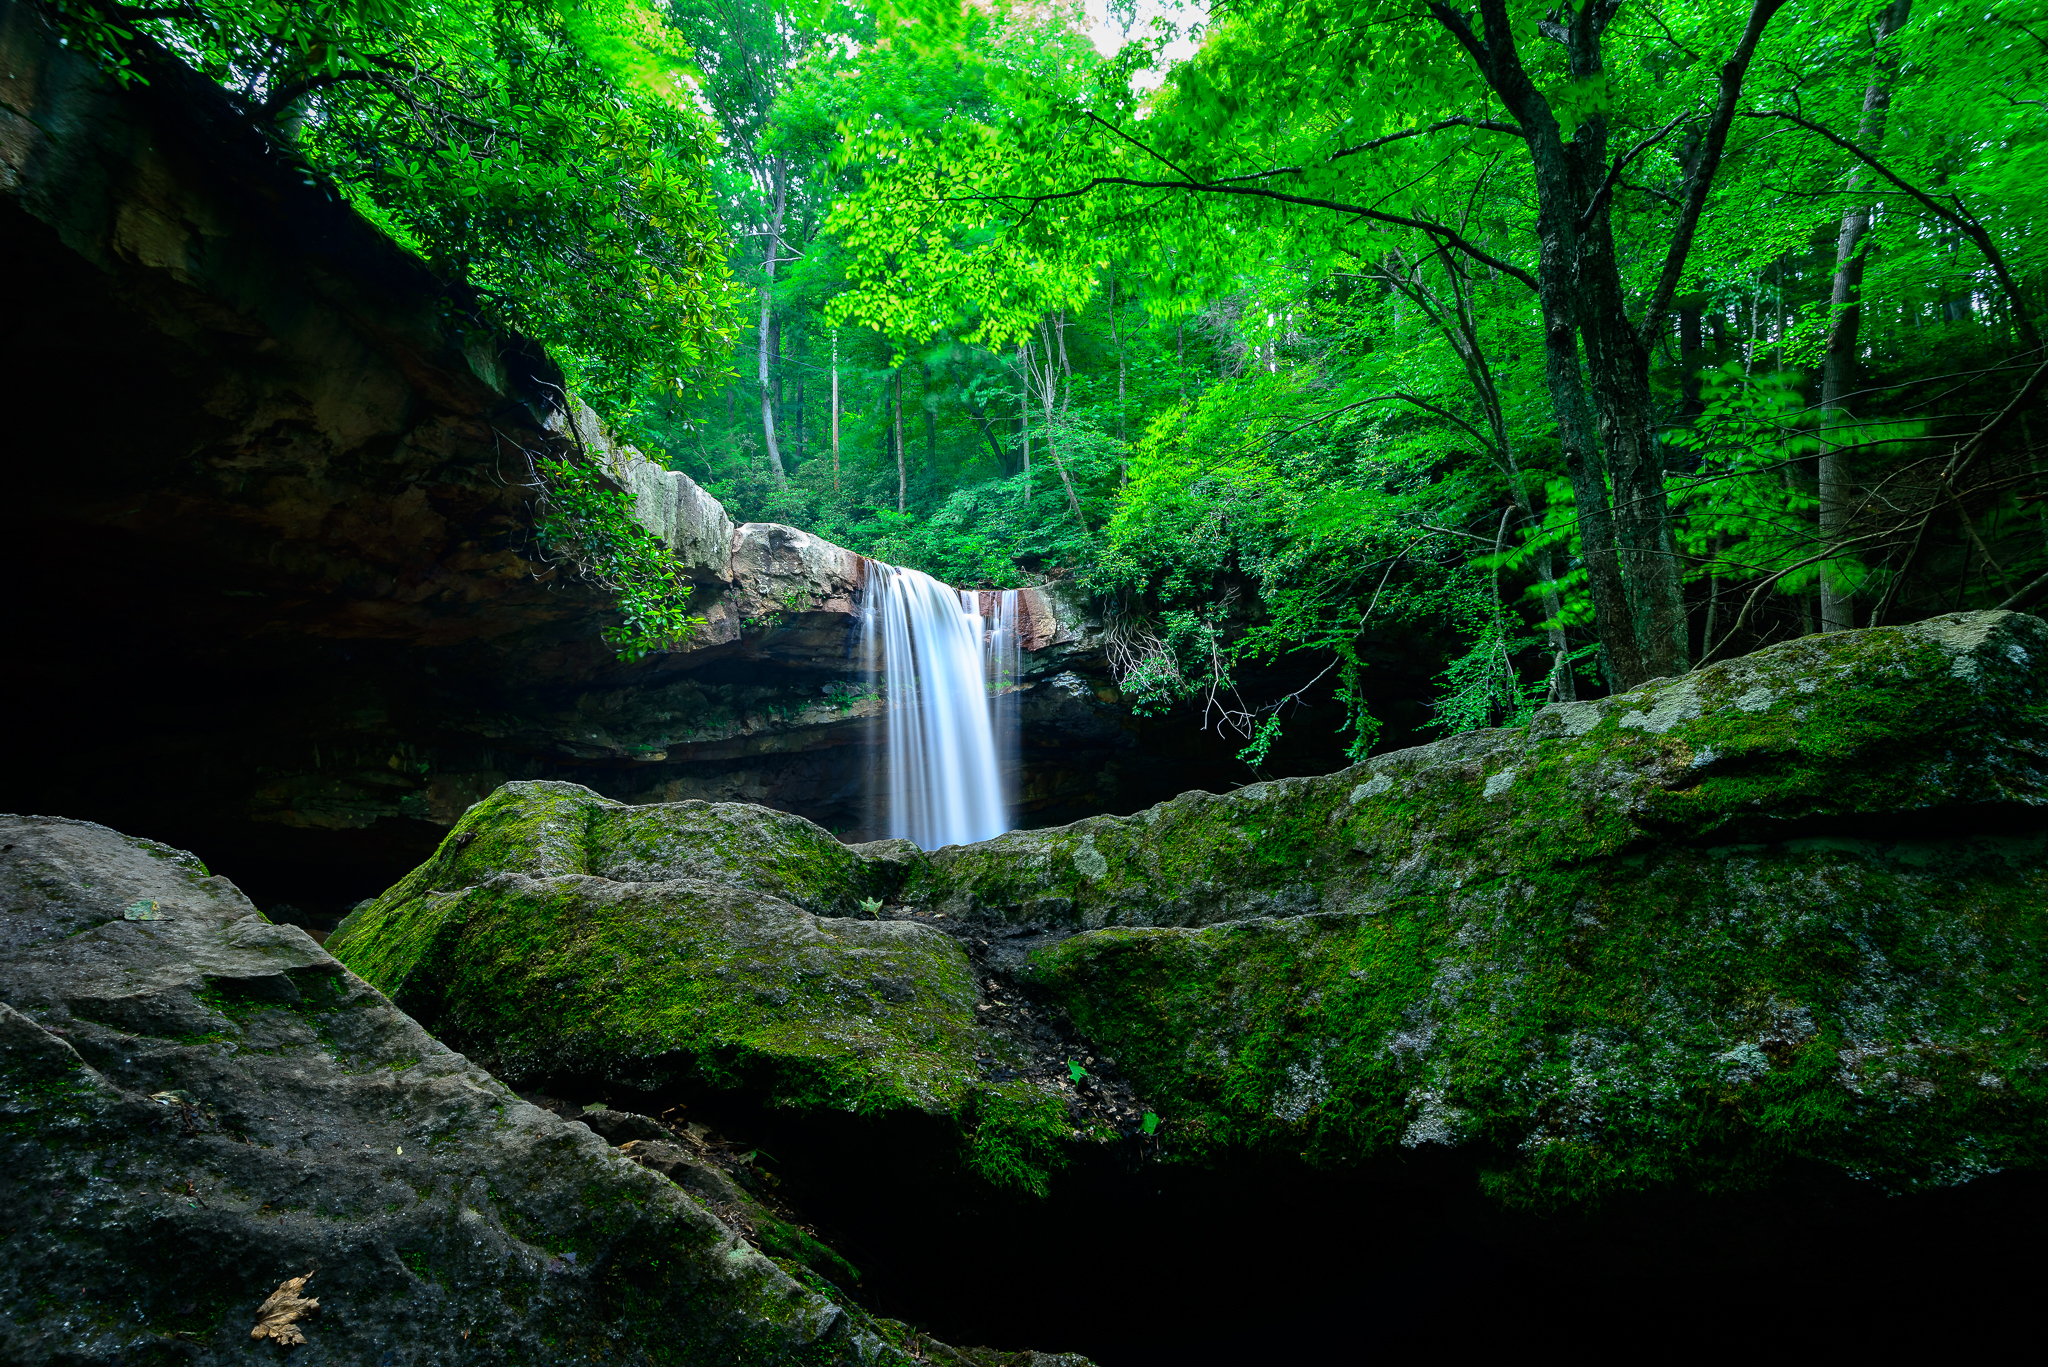 7/21/15. Family day at the best waterfall in Western, PA.